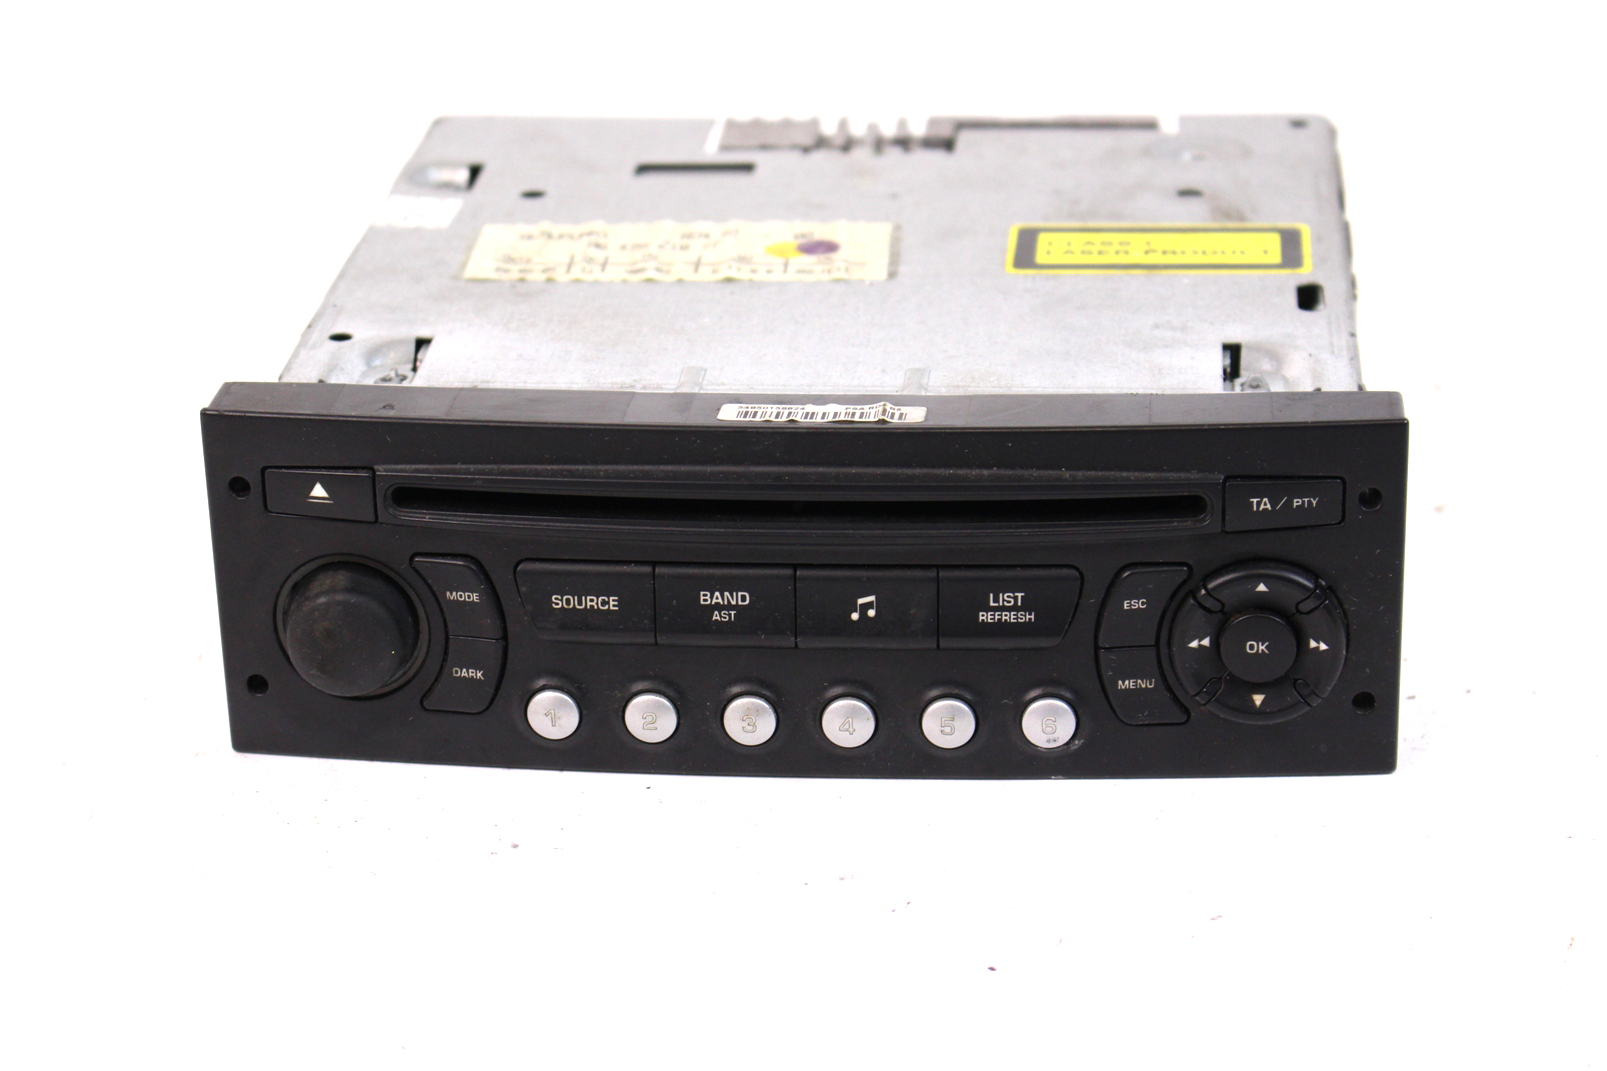 cd autoradio citroen c2 c3 96624490xt siemens vdo player radio ohne code ebay. Black Bedroom Furniture Sets. Home Design Ideas